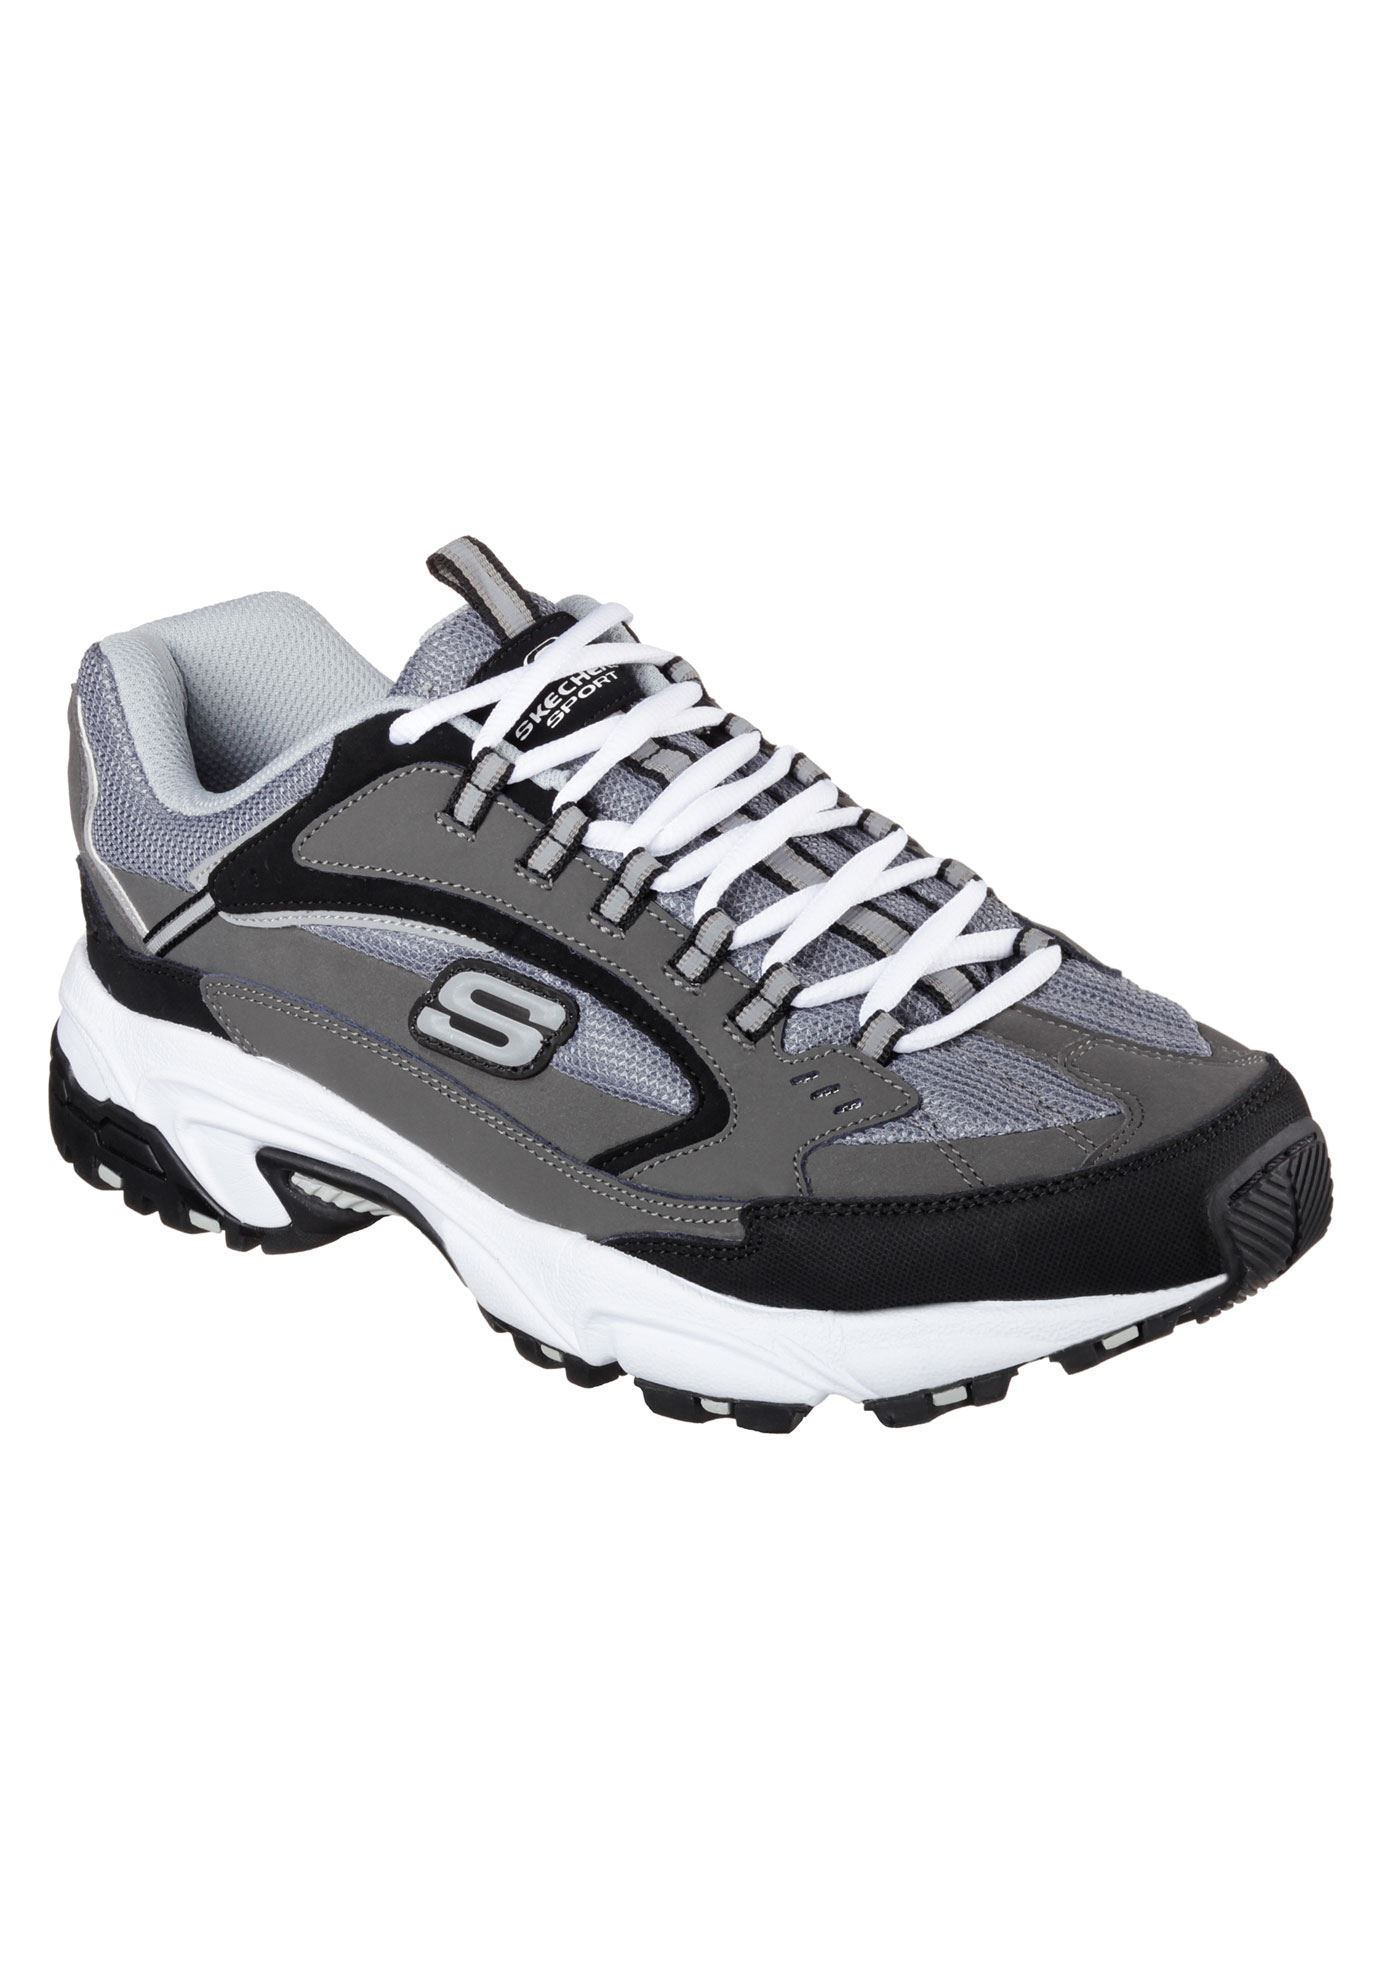 Stamina - Cutback Sneakers by SKECHERS®,